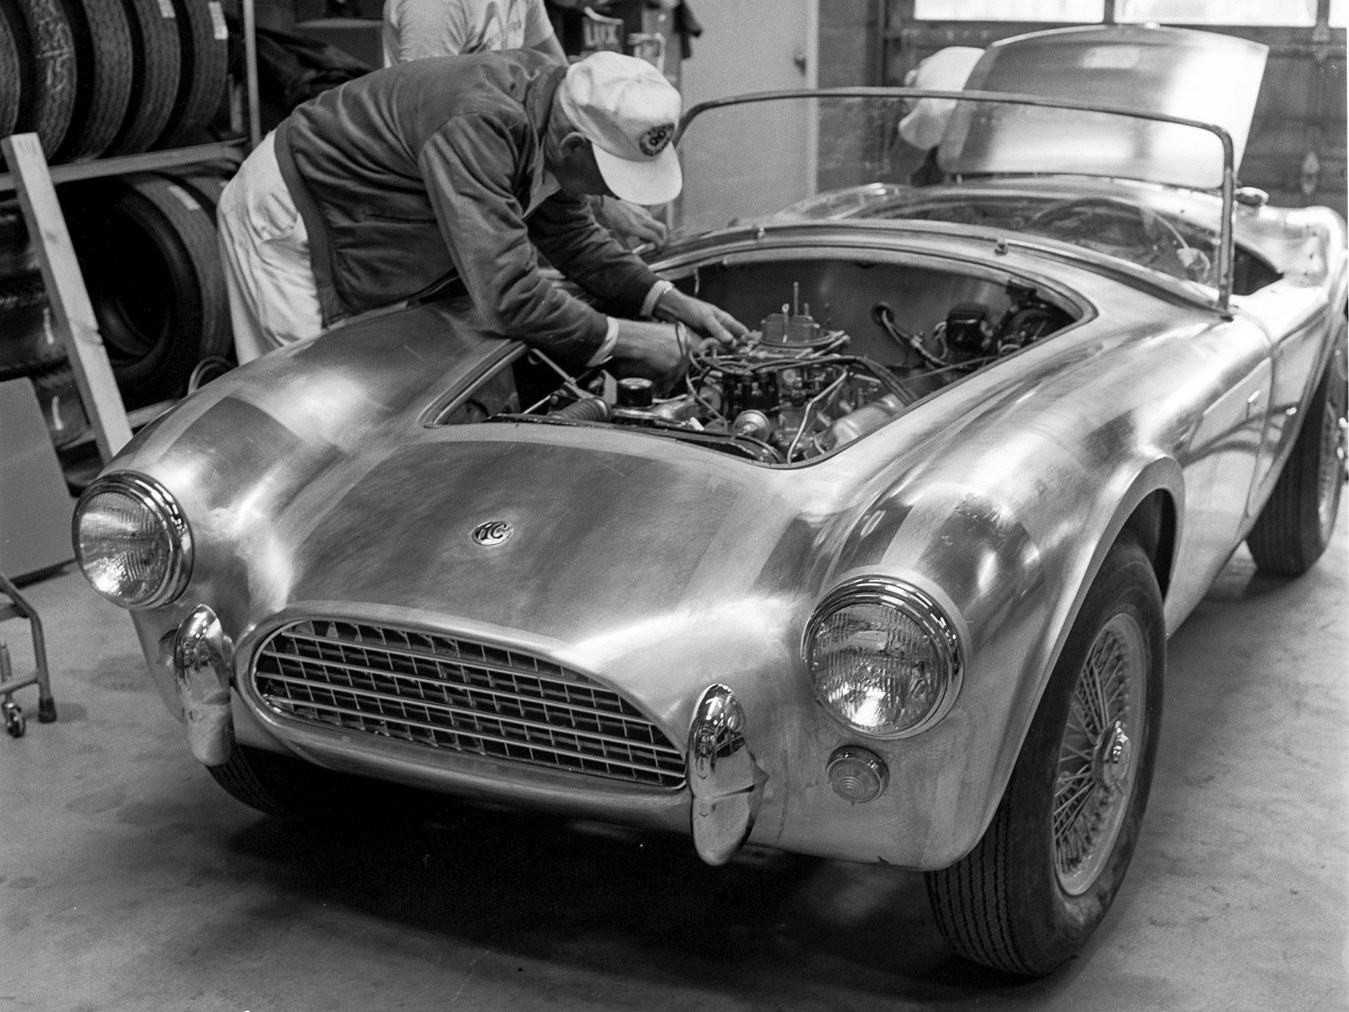 The first Shelby Cobra, CSX 2000.